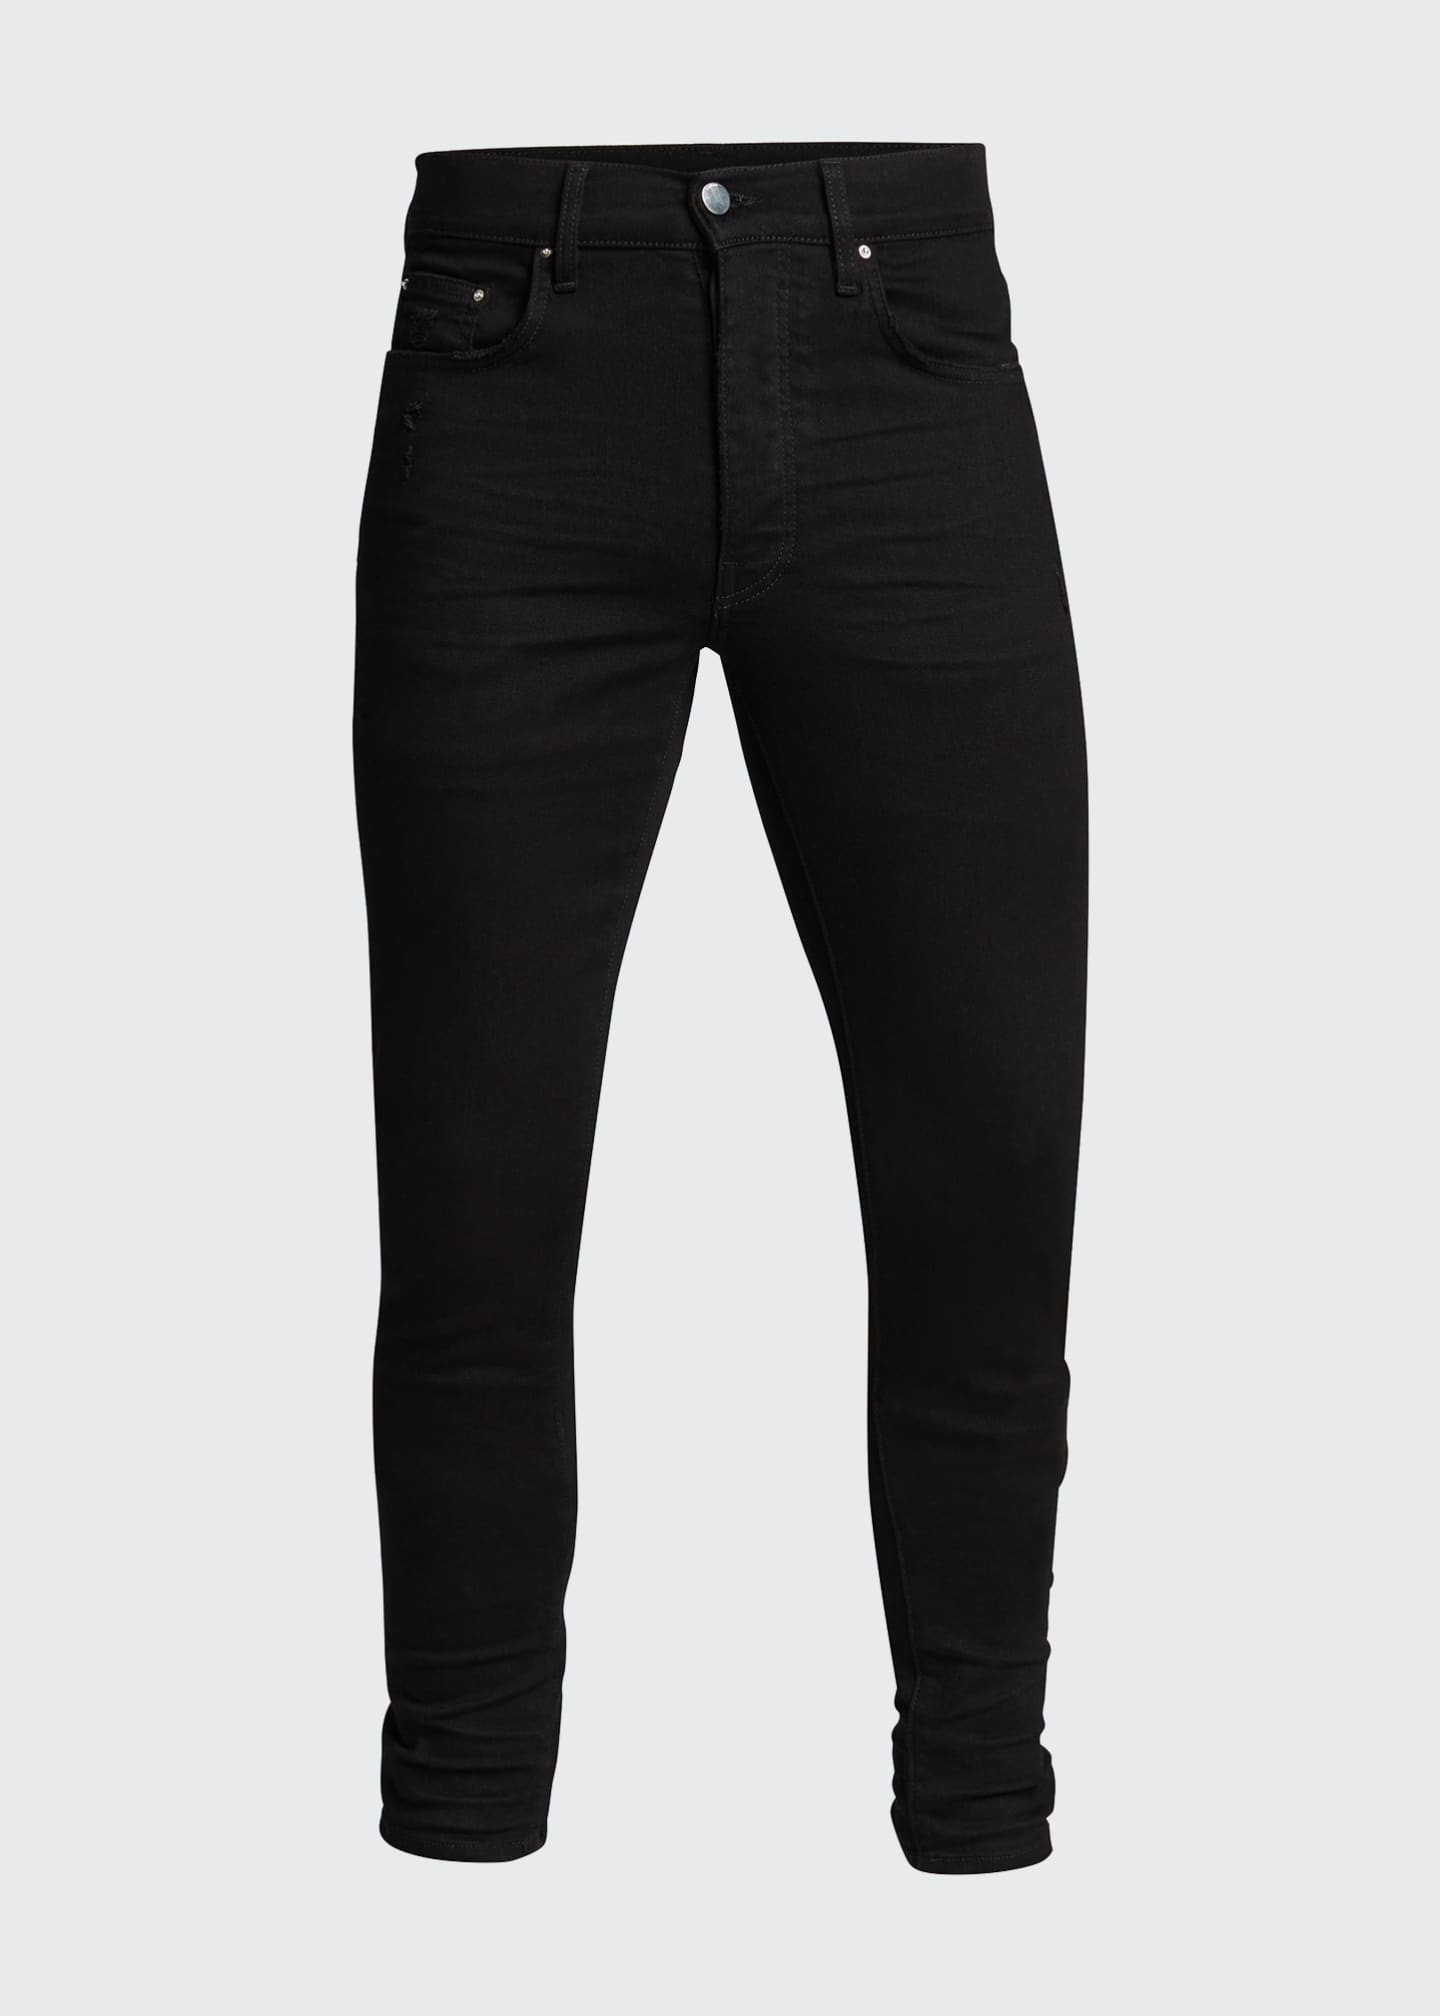 Image 5 of 5: Men's Stack Dark-Wash Slim Jeans